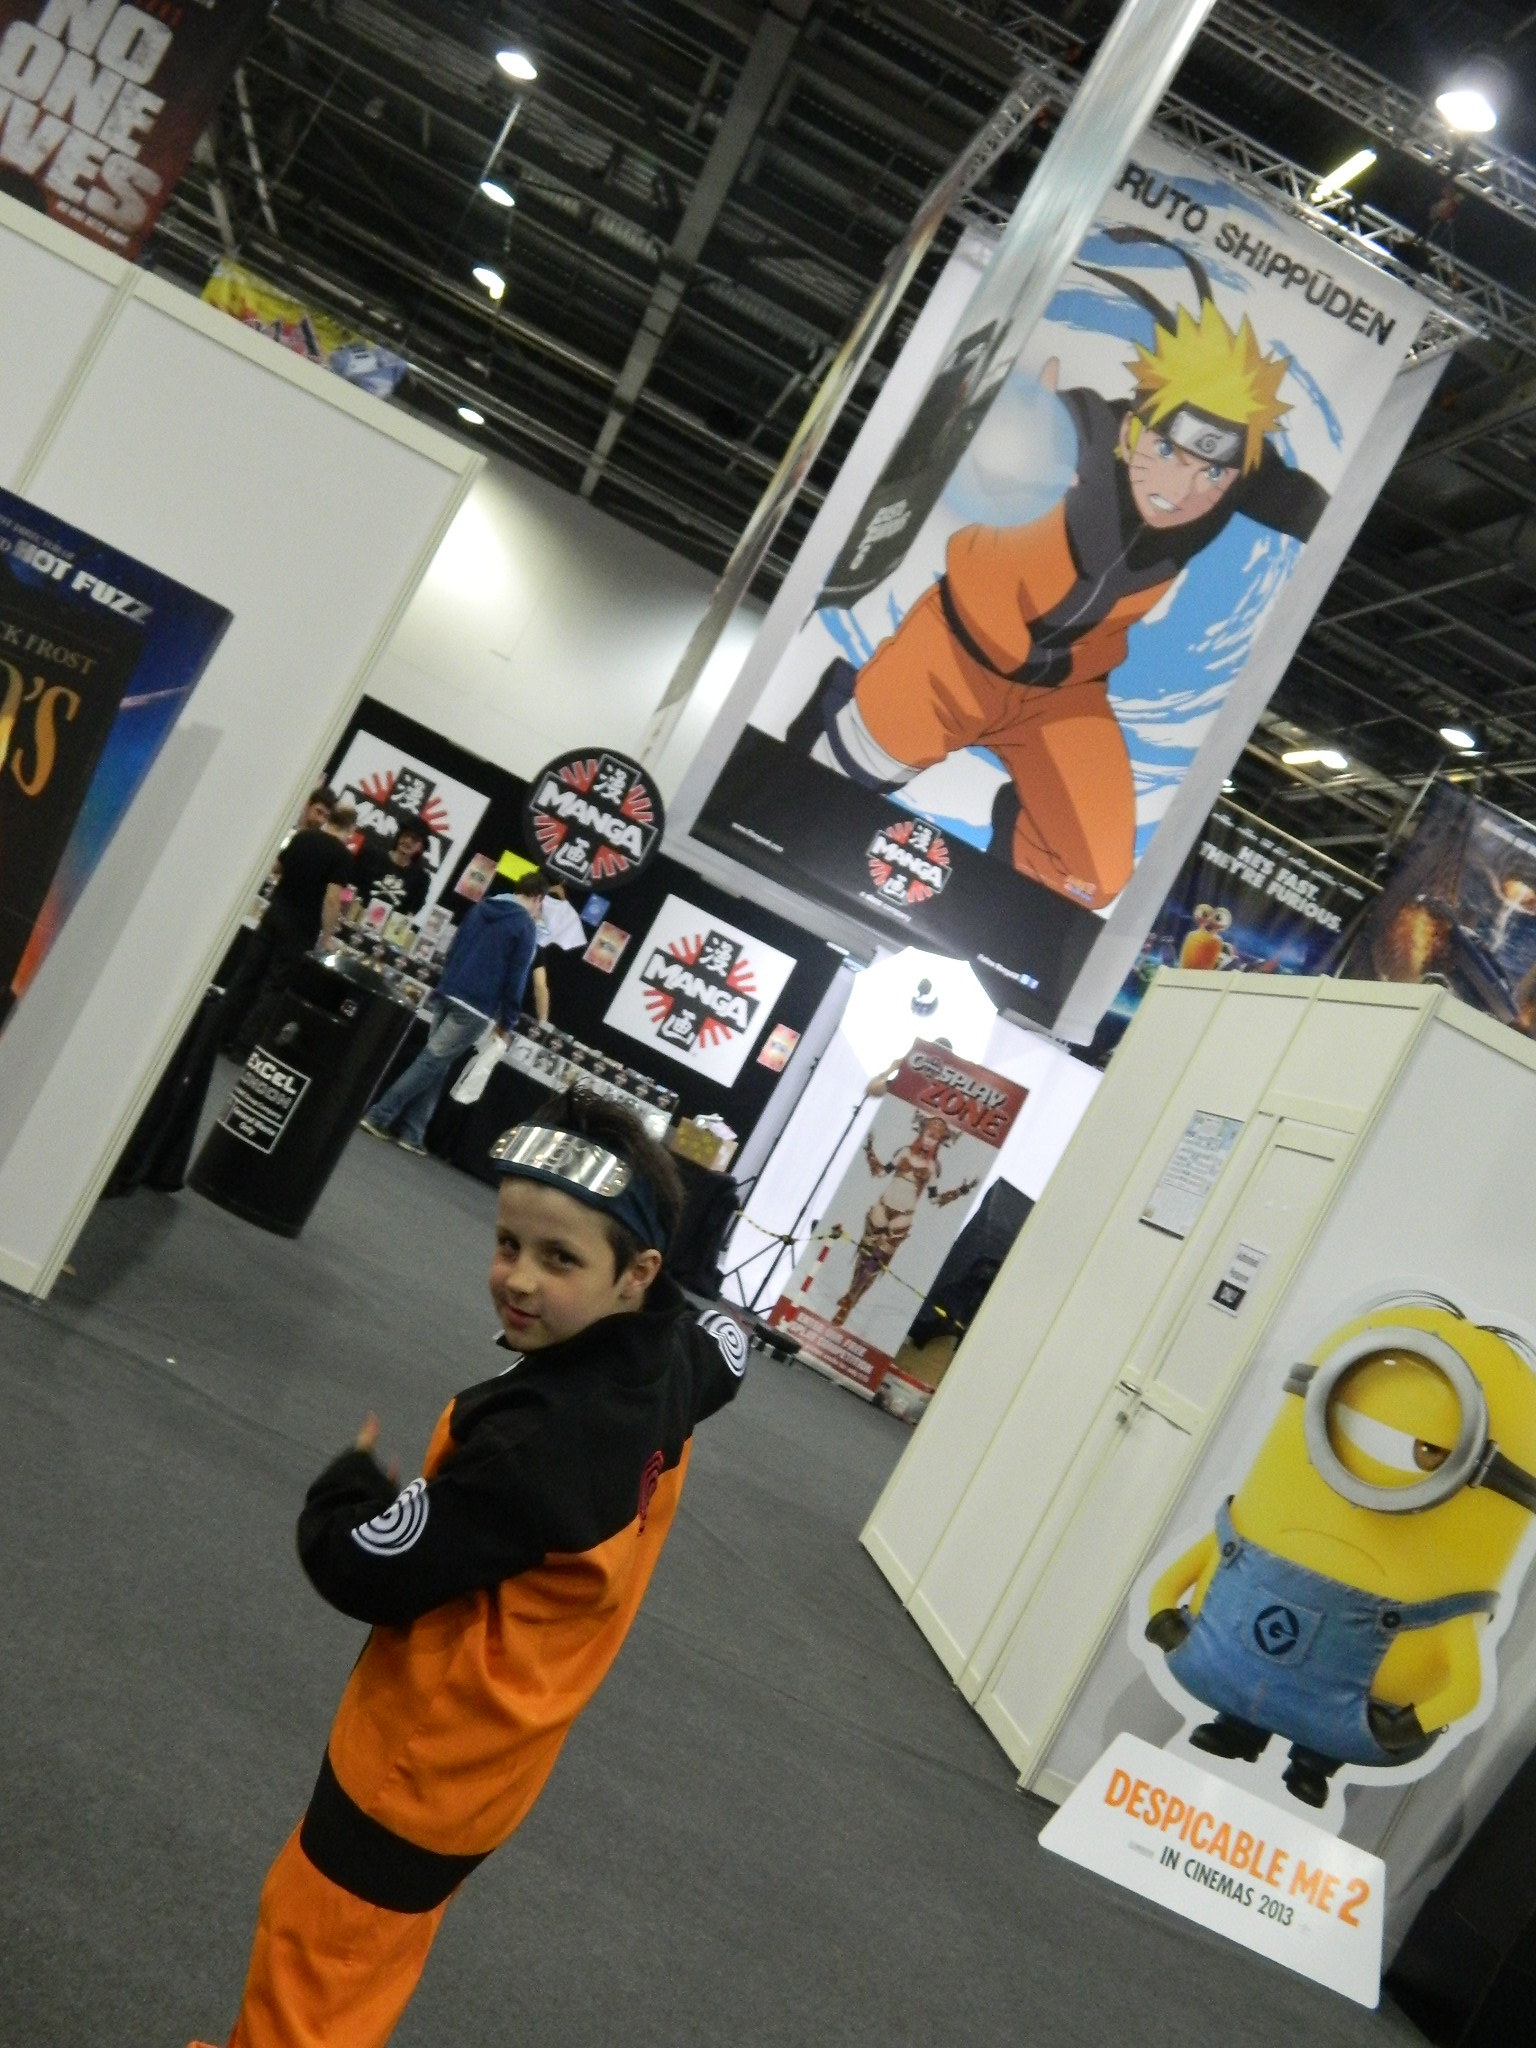 Mcm Expo Stands For : Mcm london expo comic con th may